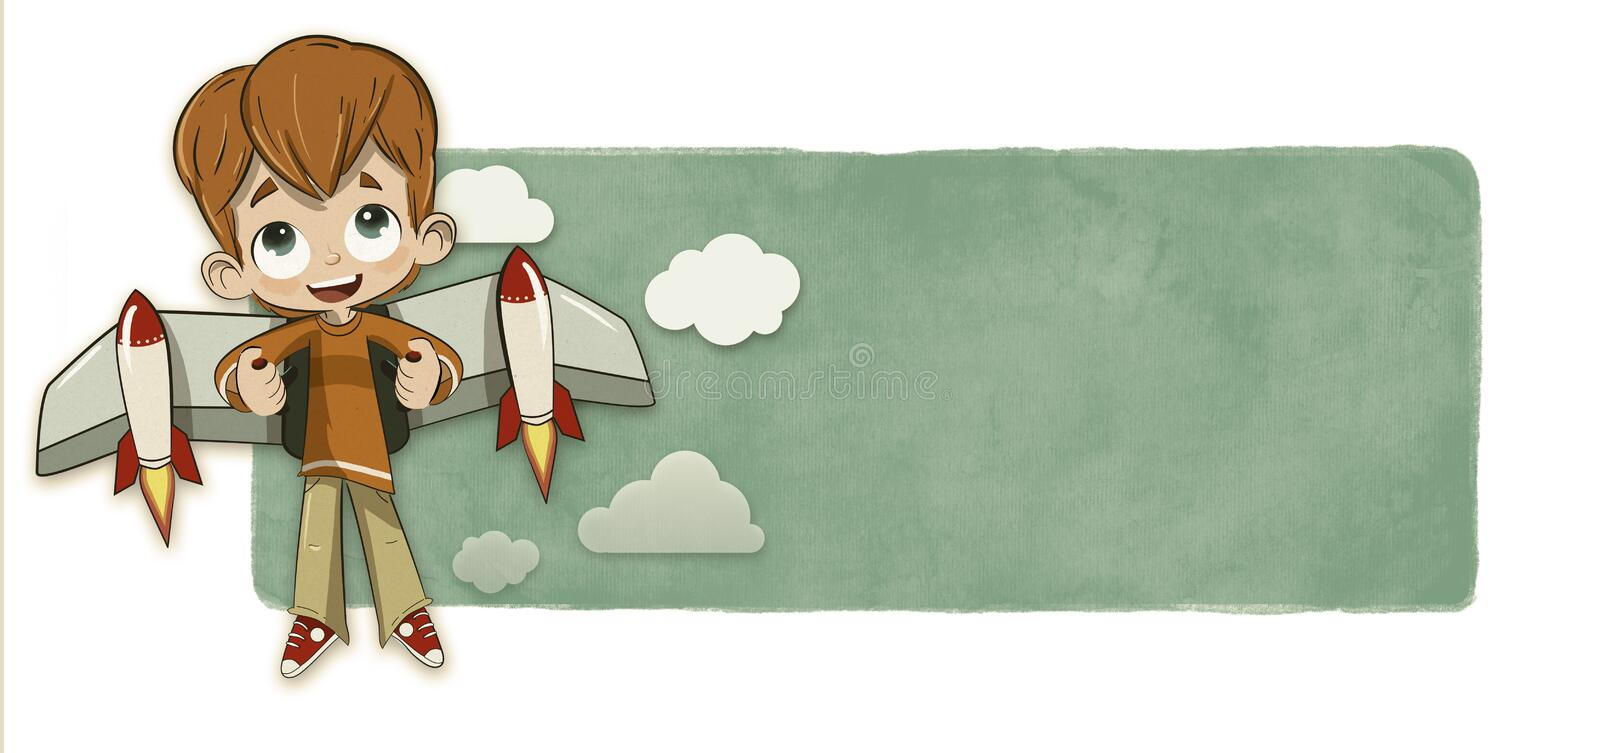 Boy and rocket wings vector illustration